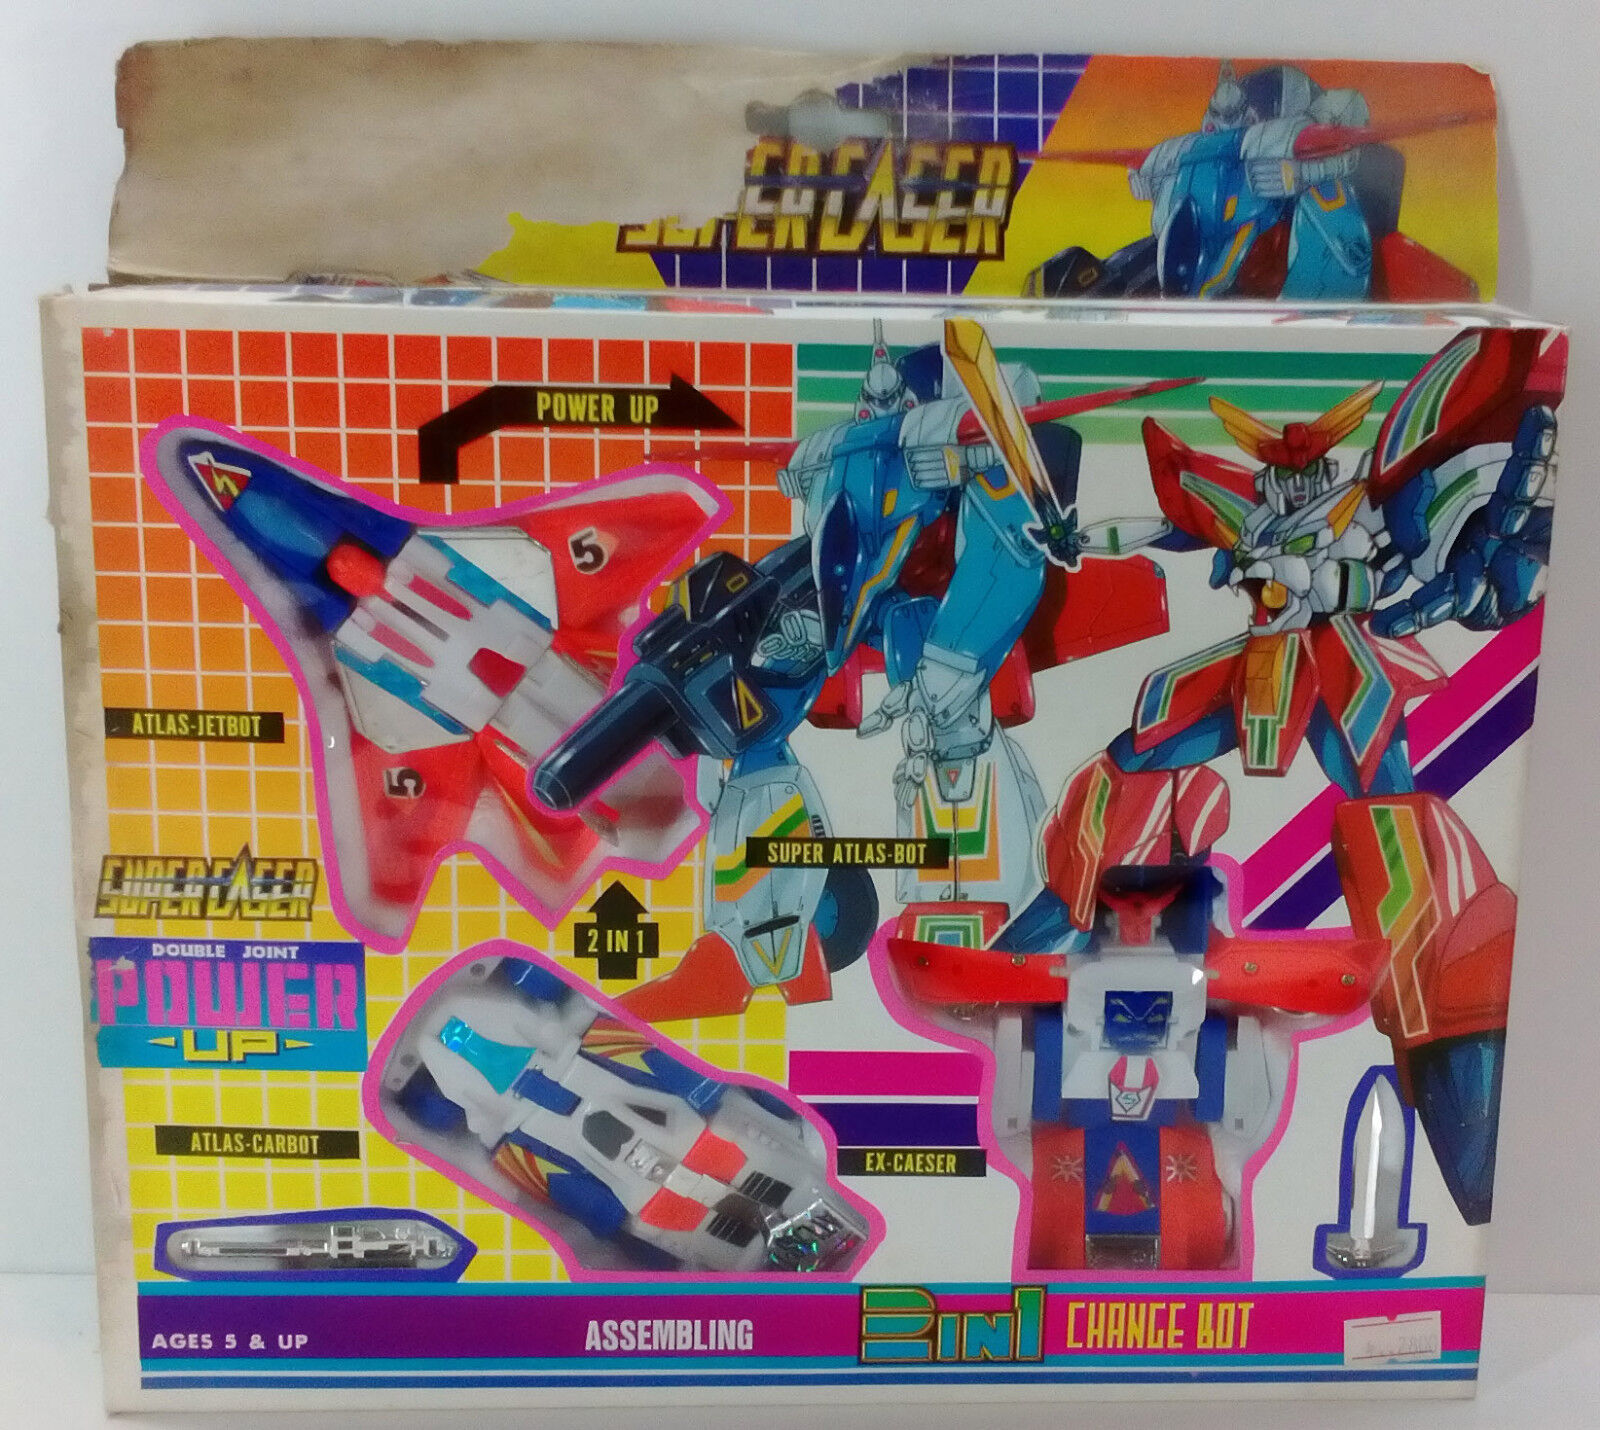 VTG 2 IN IN IN 1 CHANGE BOT SUPER LASER DOUBLE JOINT TRANSFORMERS KO MADE IN TAIWAN 136ebd